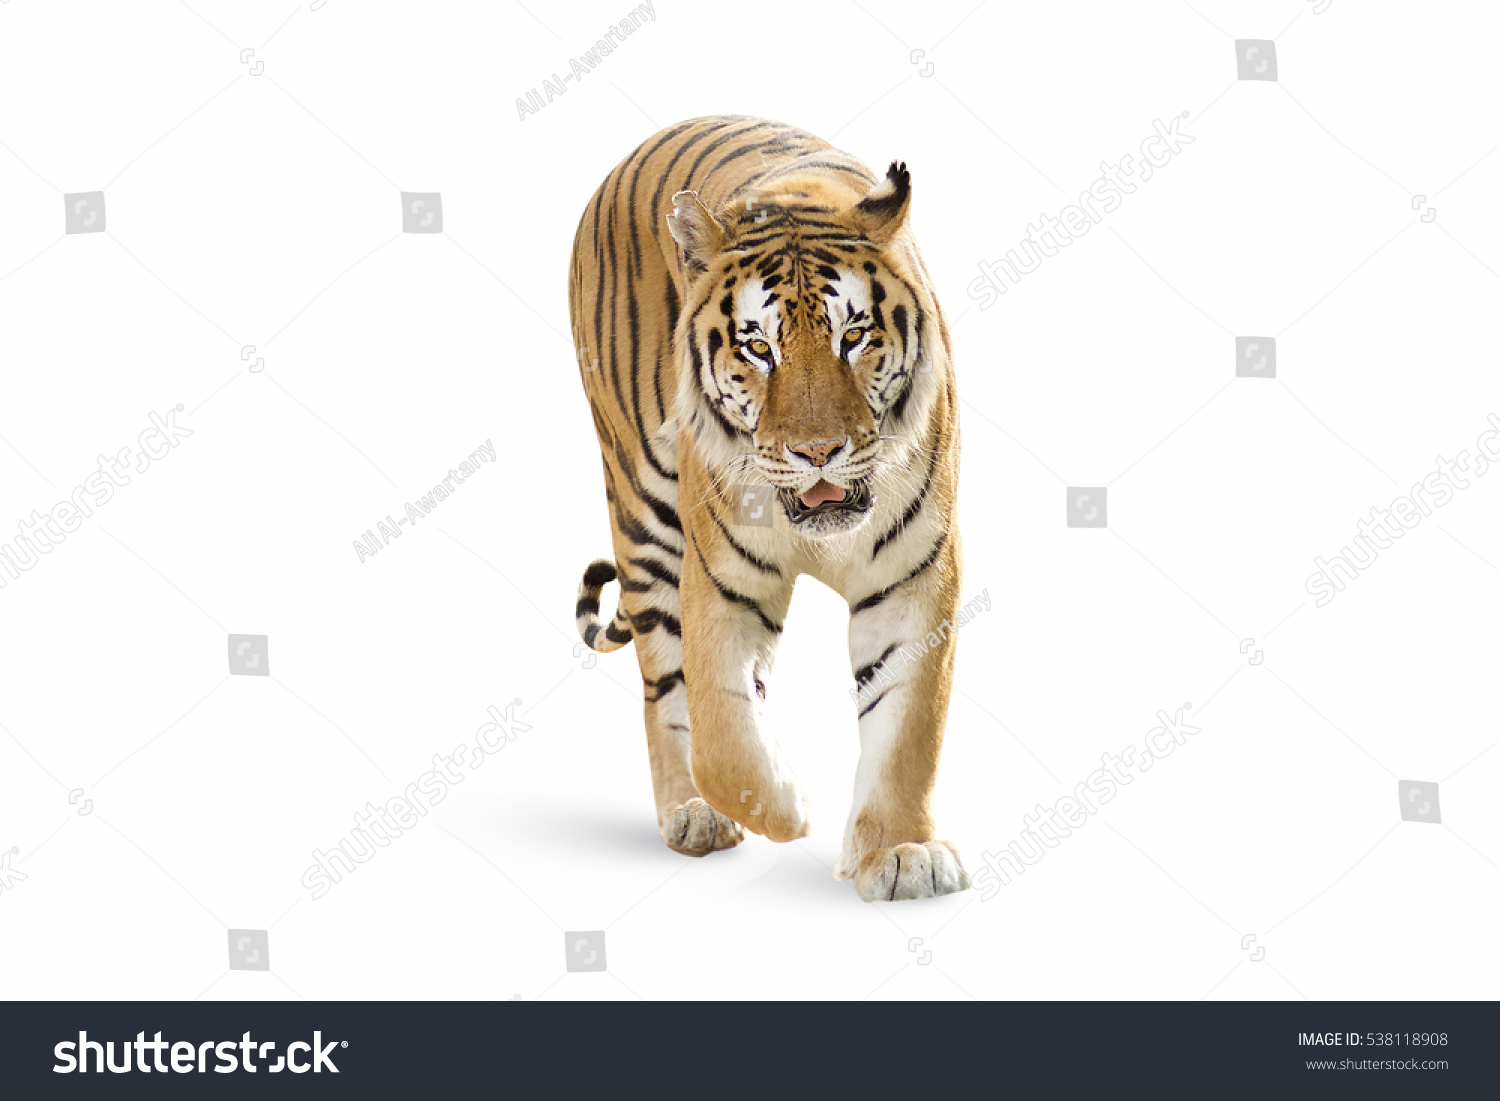 stock-photo-aggressive-bengal-tiger-stan